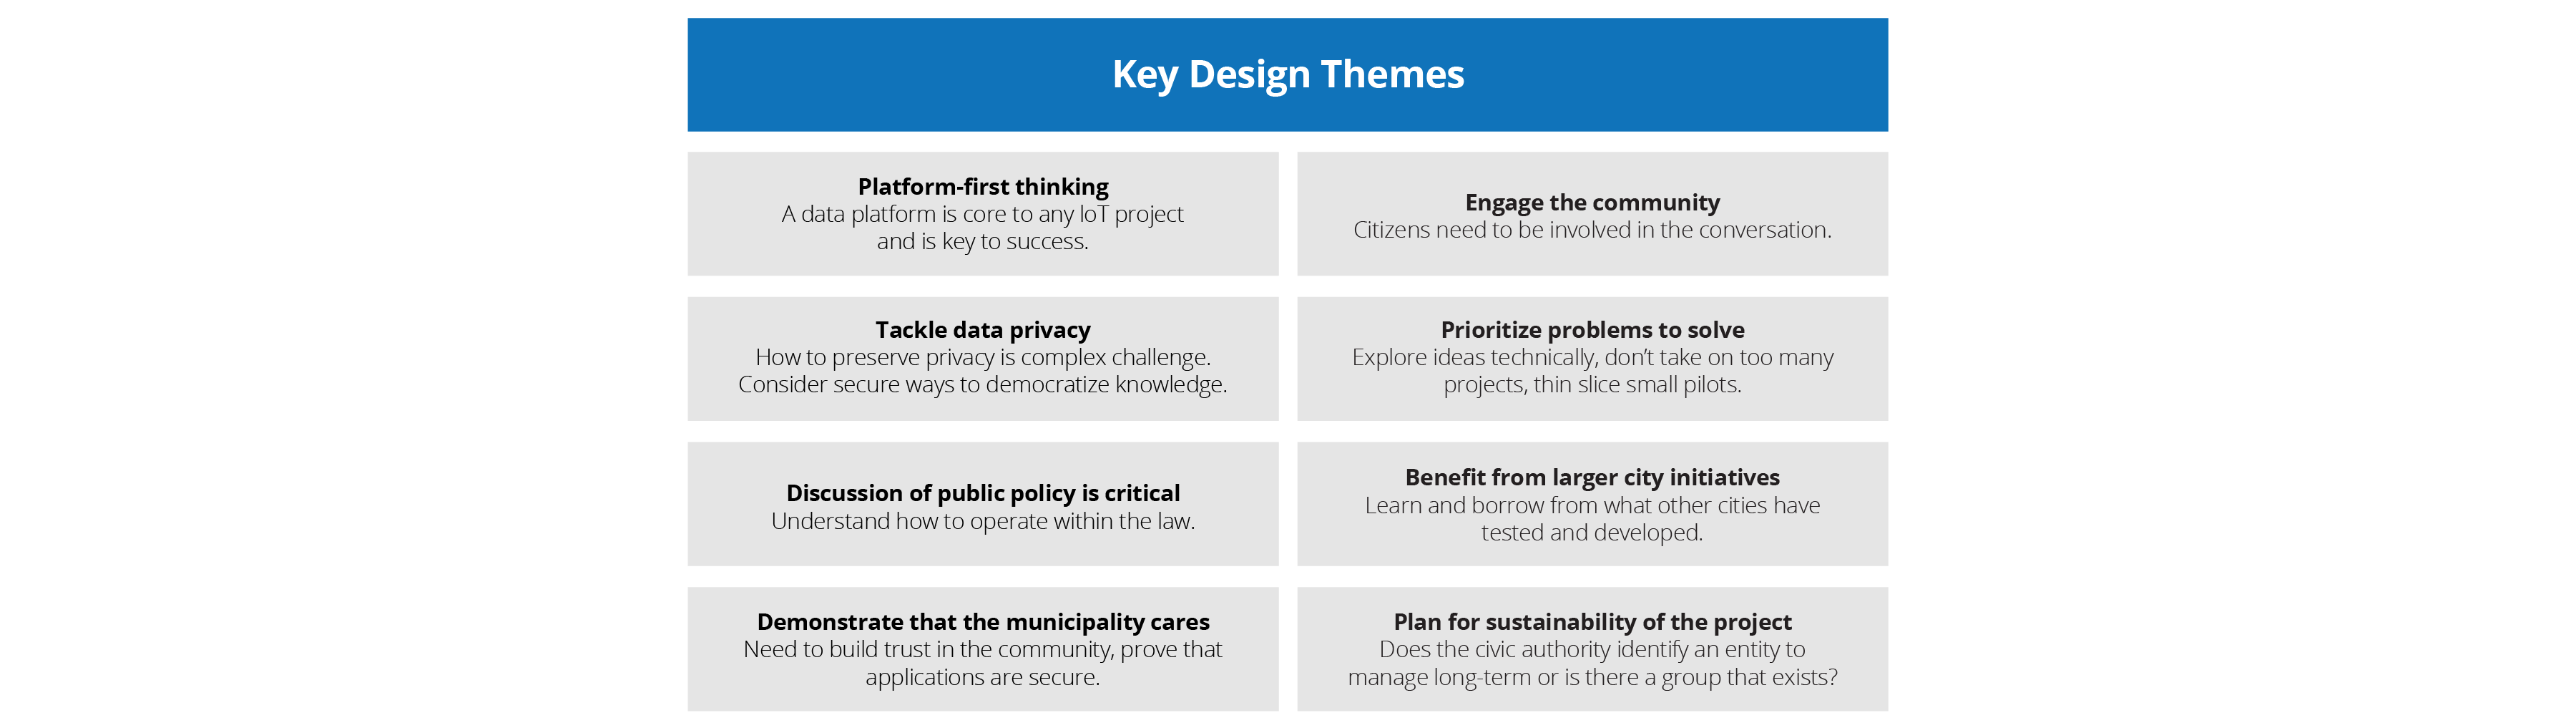 Key design themes